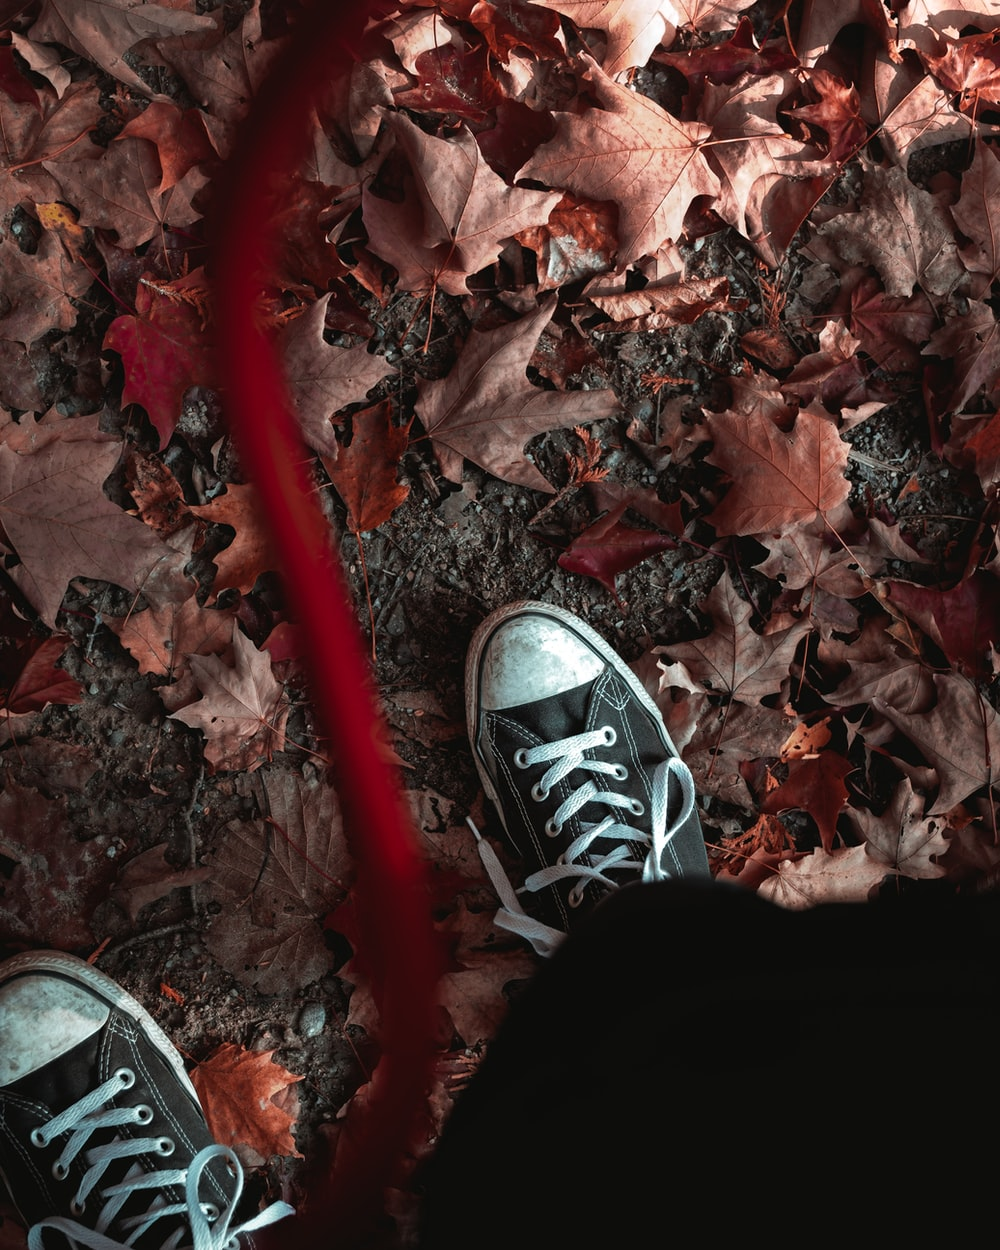 person wearing black pants and black and white sneakers standing on dried leaves